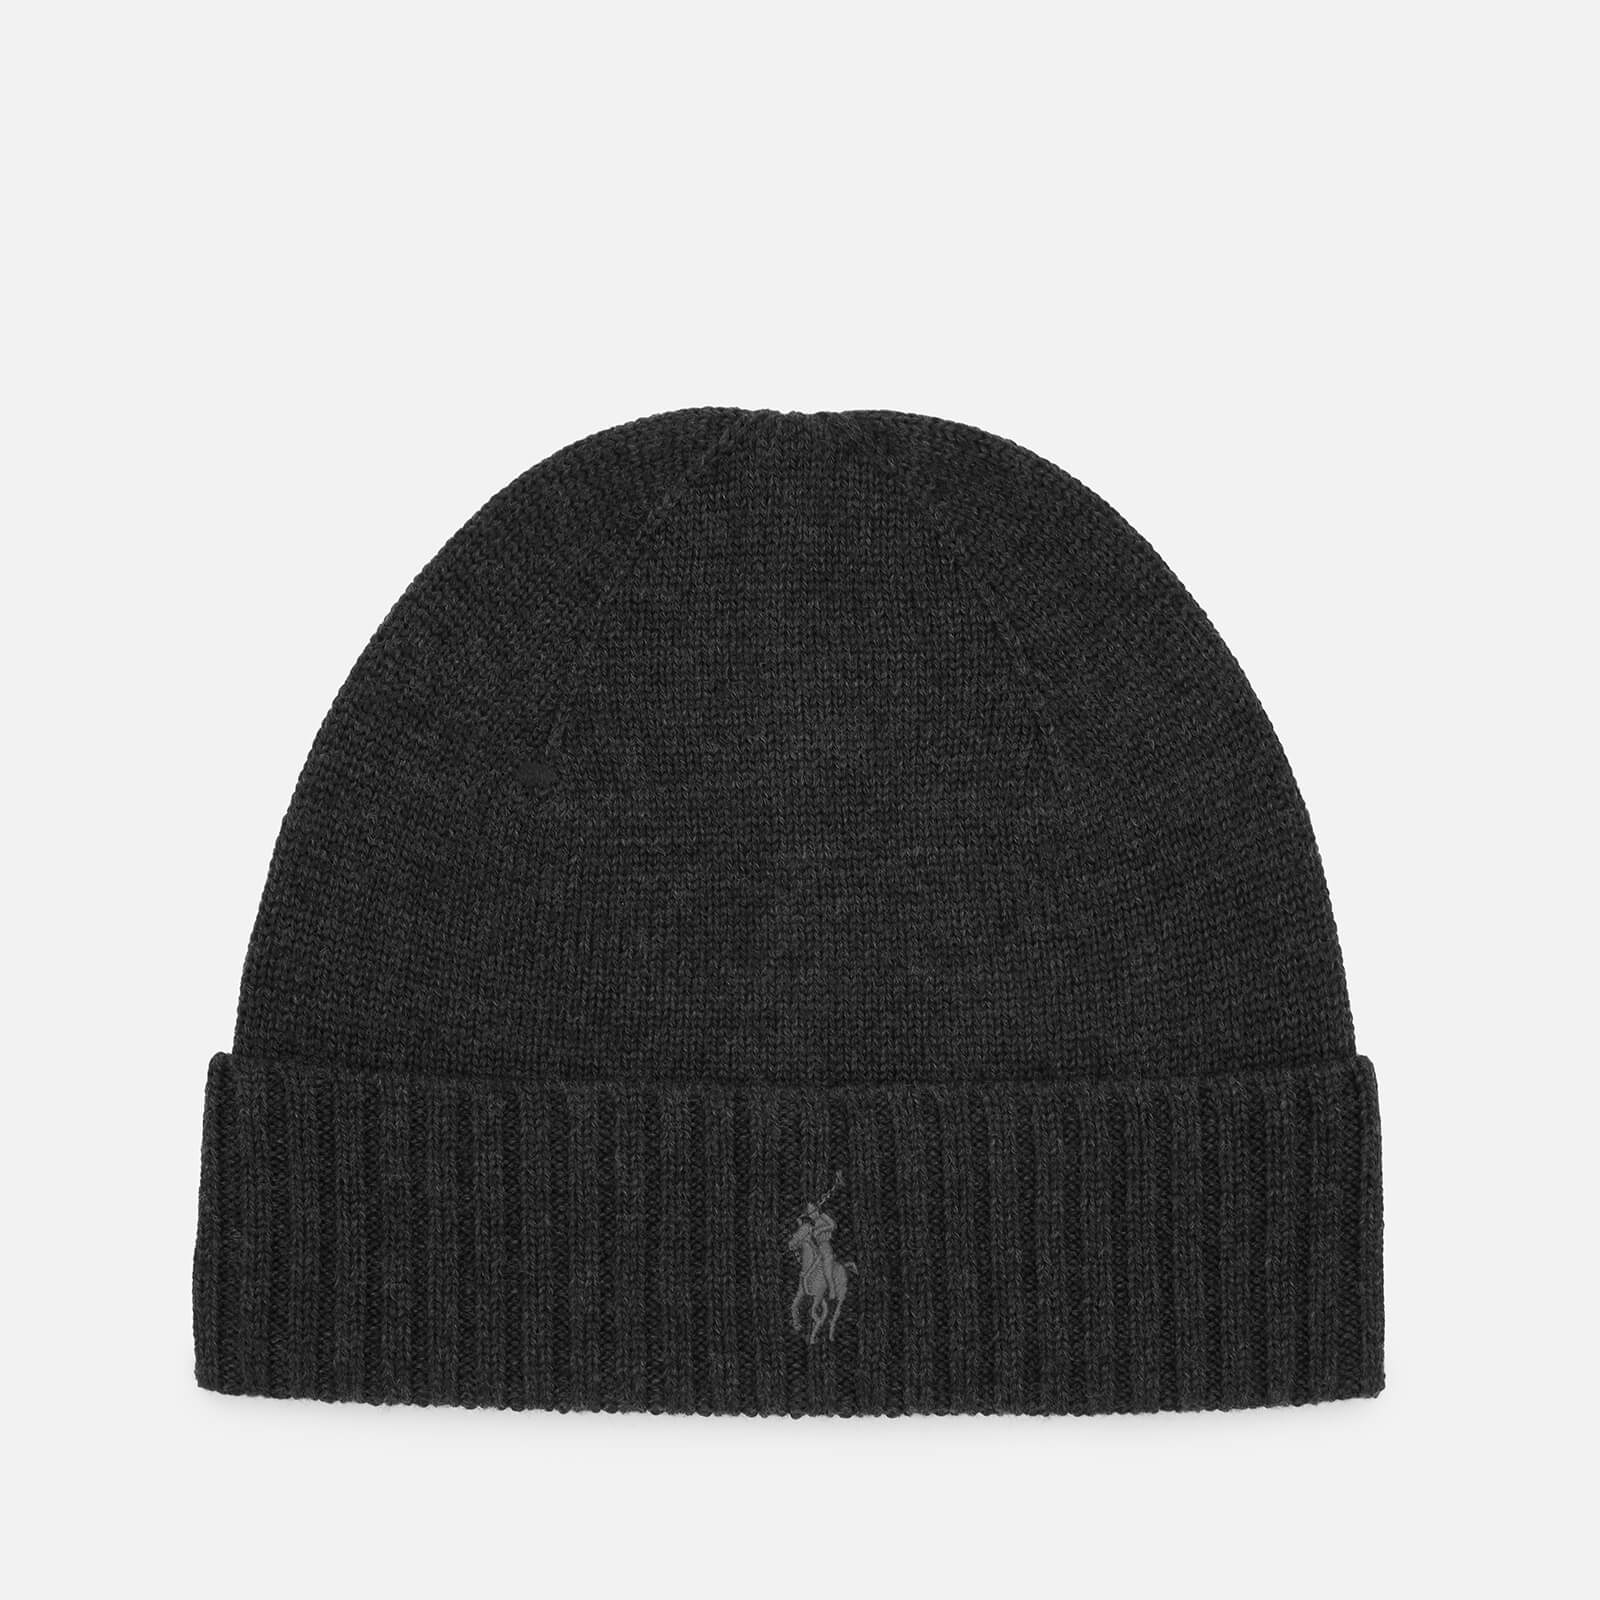 4e1419cbc Polo Ralph Lauren Men S Merino Wool Beanie Hat Dark Charcoal